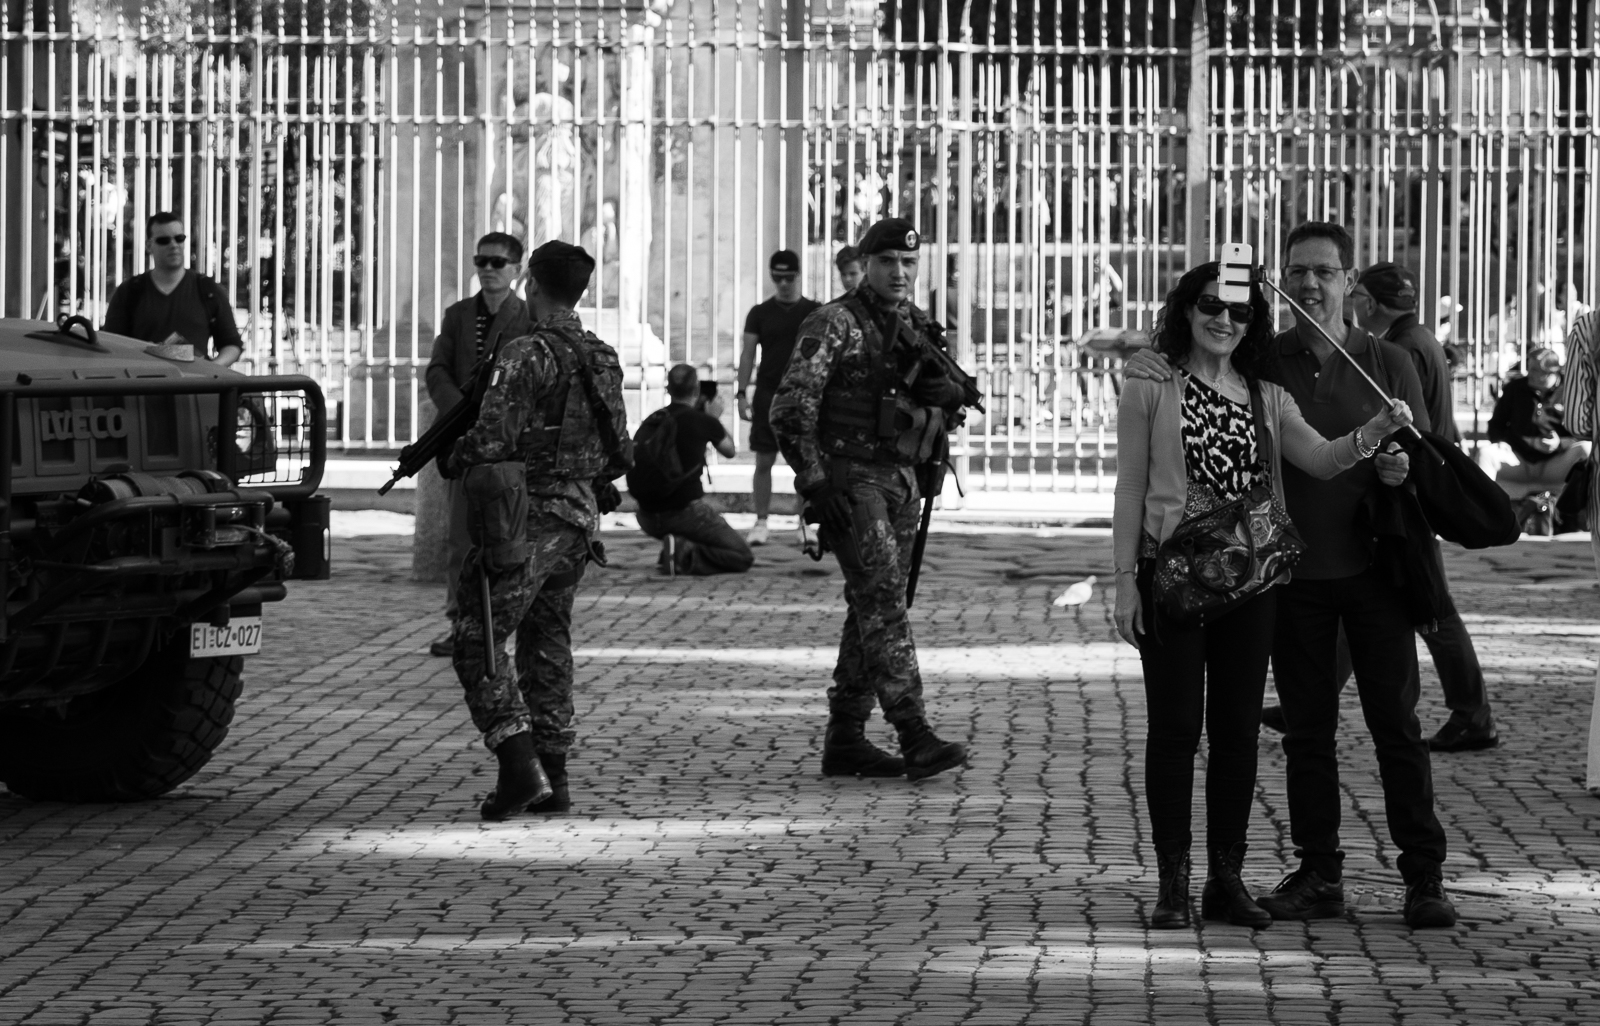 On the one hand you have the smiling people but very close are the heavily armed soldiers.